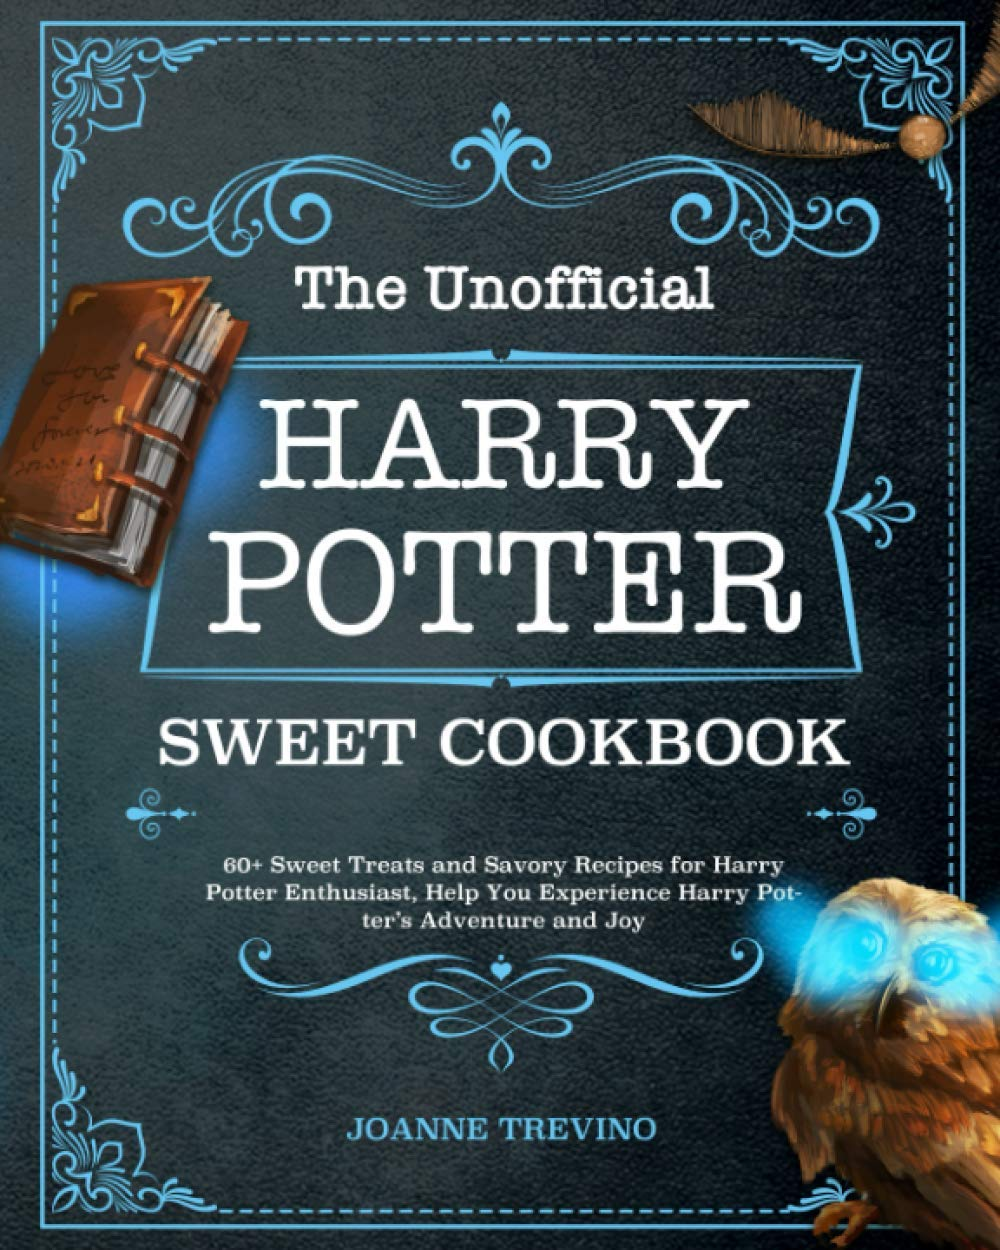 The Unofficial Harry Potter Sweet Cookbook: 60+ Sweet Treats and Savory Recipes for Harry Potter Enthusiast, Help You Experience Harry Potter's Adventure and Joy